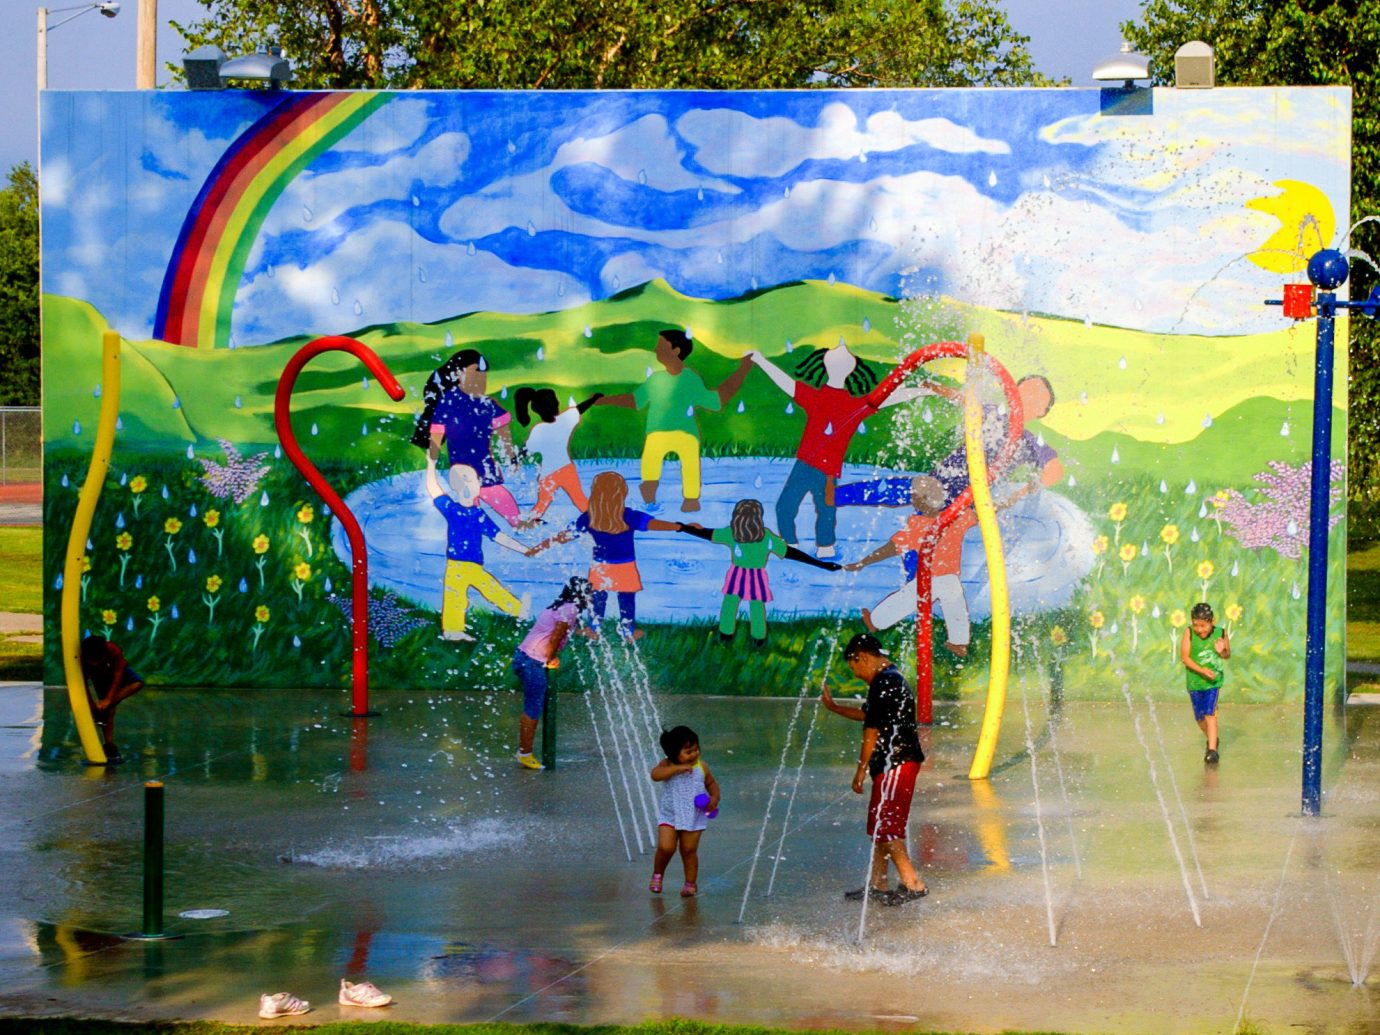 Offbeat water Nature art mural leisure amusement park painting tree colorful tourist attraction recreation fun artwork water feature graffiti colored visual arts tourism park plant Playground world